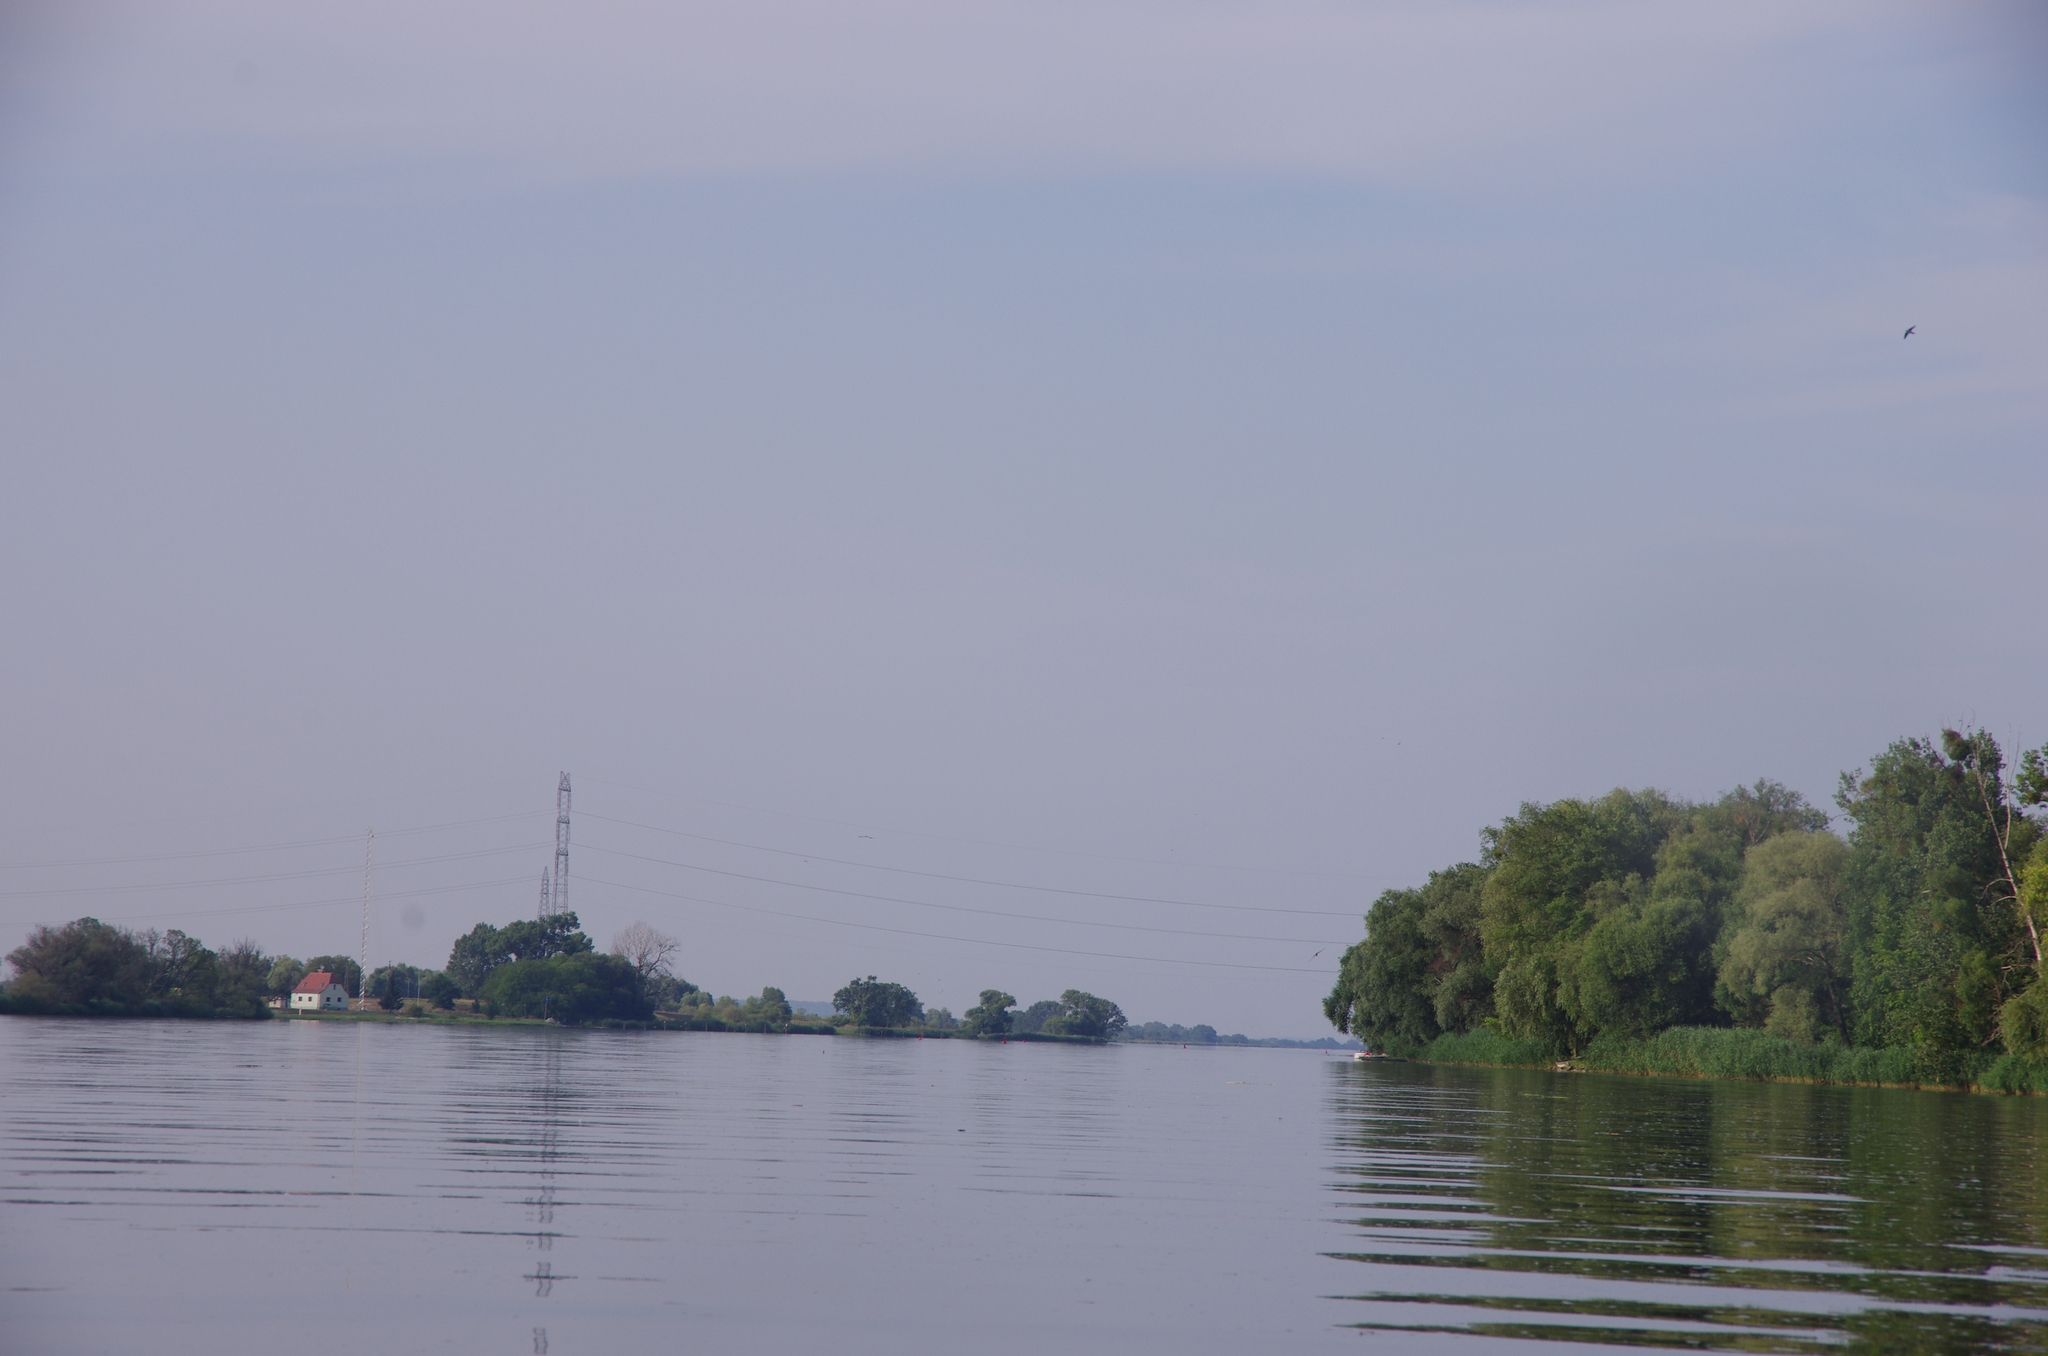 kayaking-odra-east-and-west_17-00-41_25-07-2016